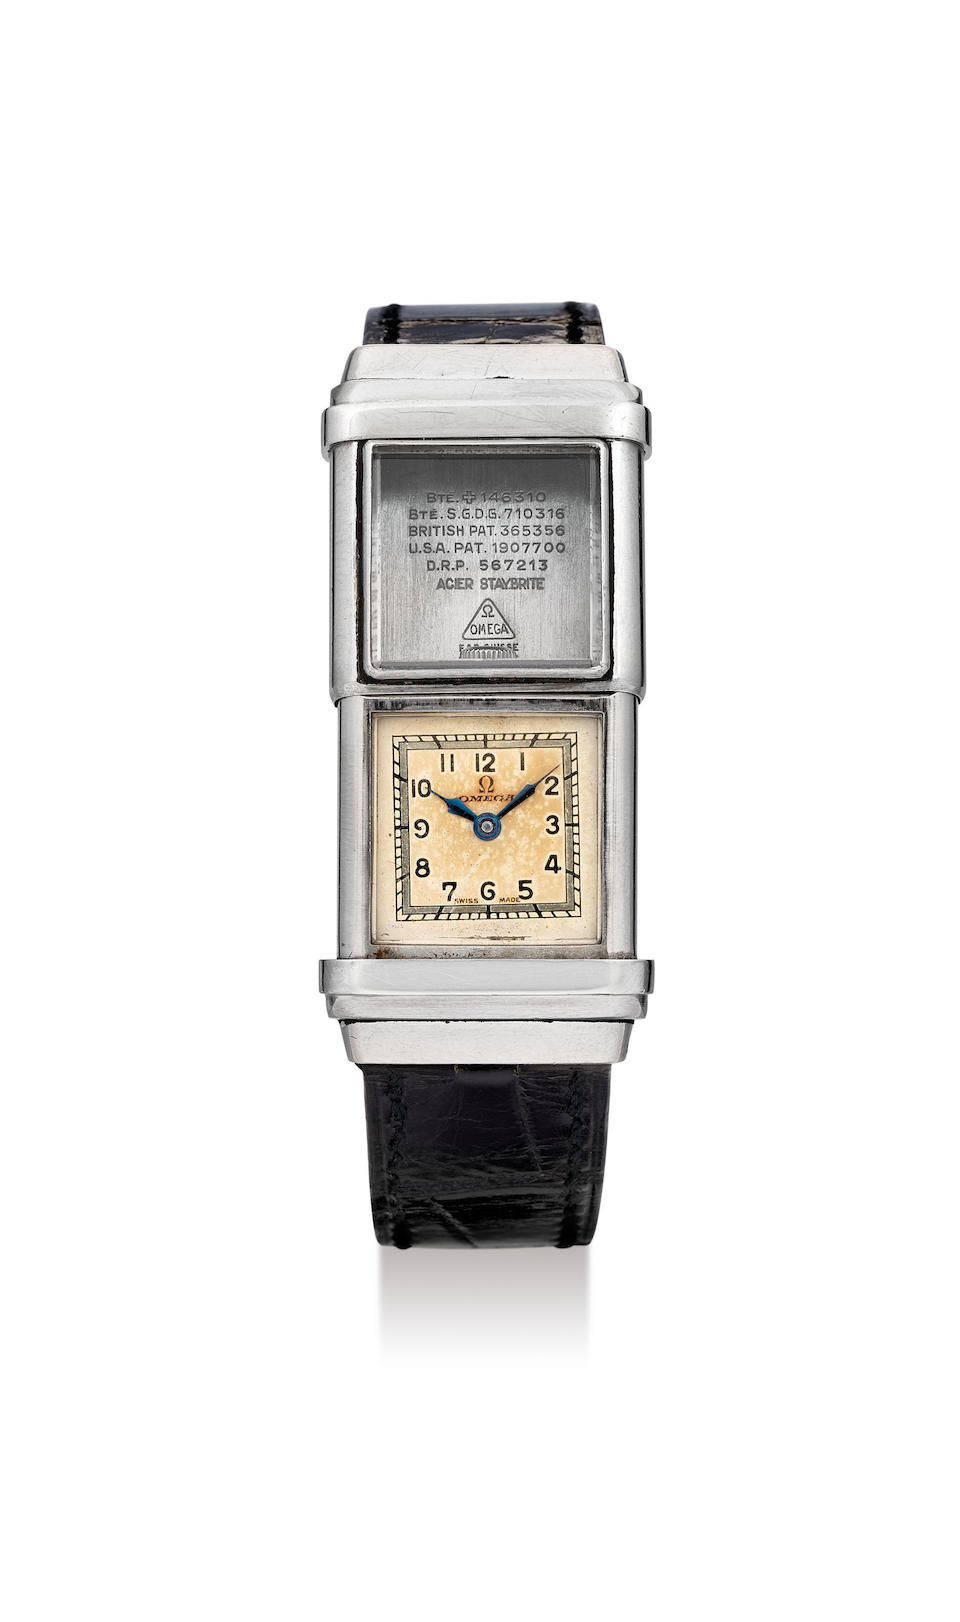 Omega. An Unusual Stainless Steel Square Wristwatch with Water Resistant Sliding Case